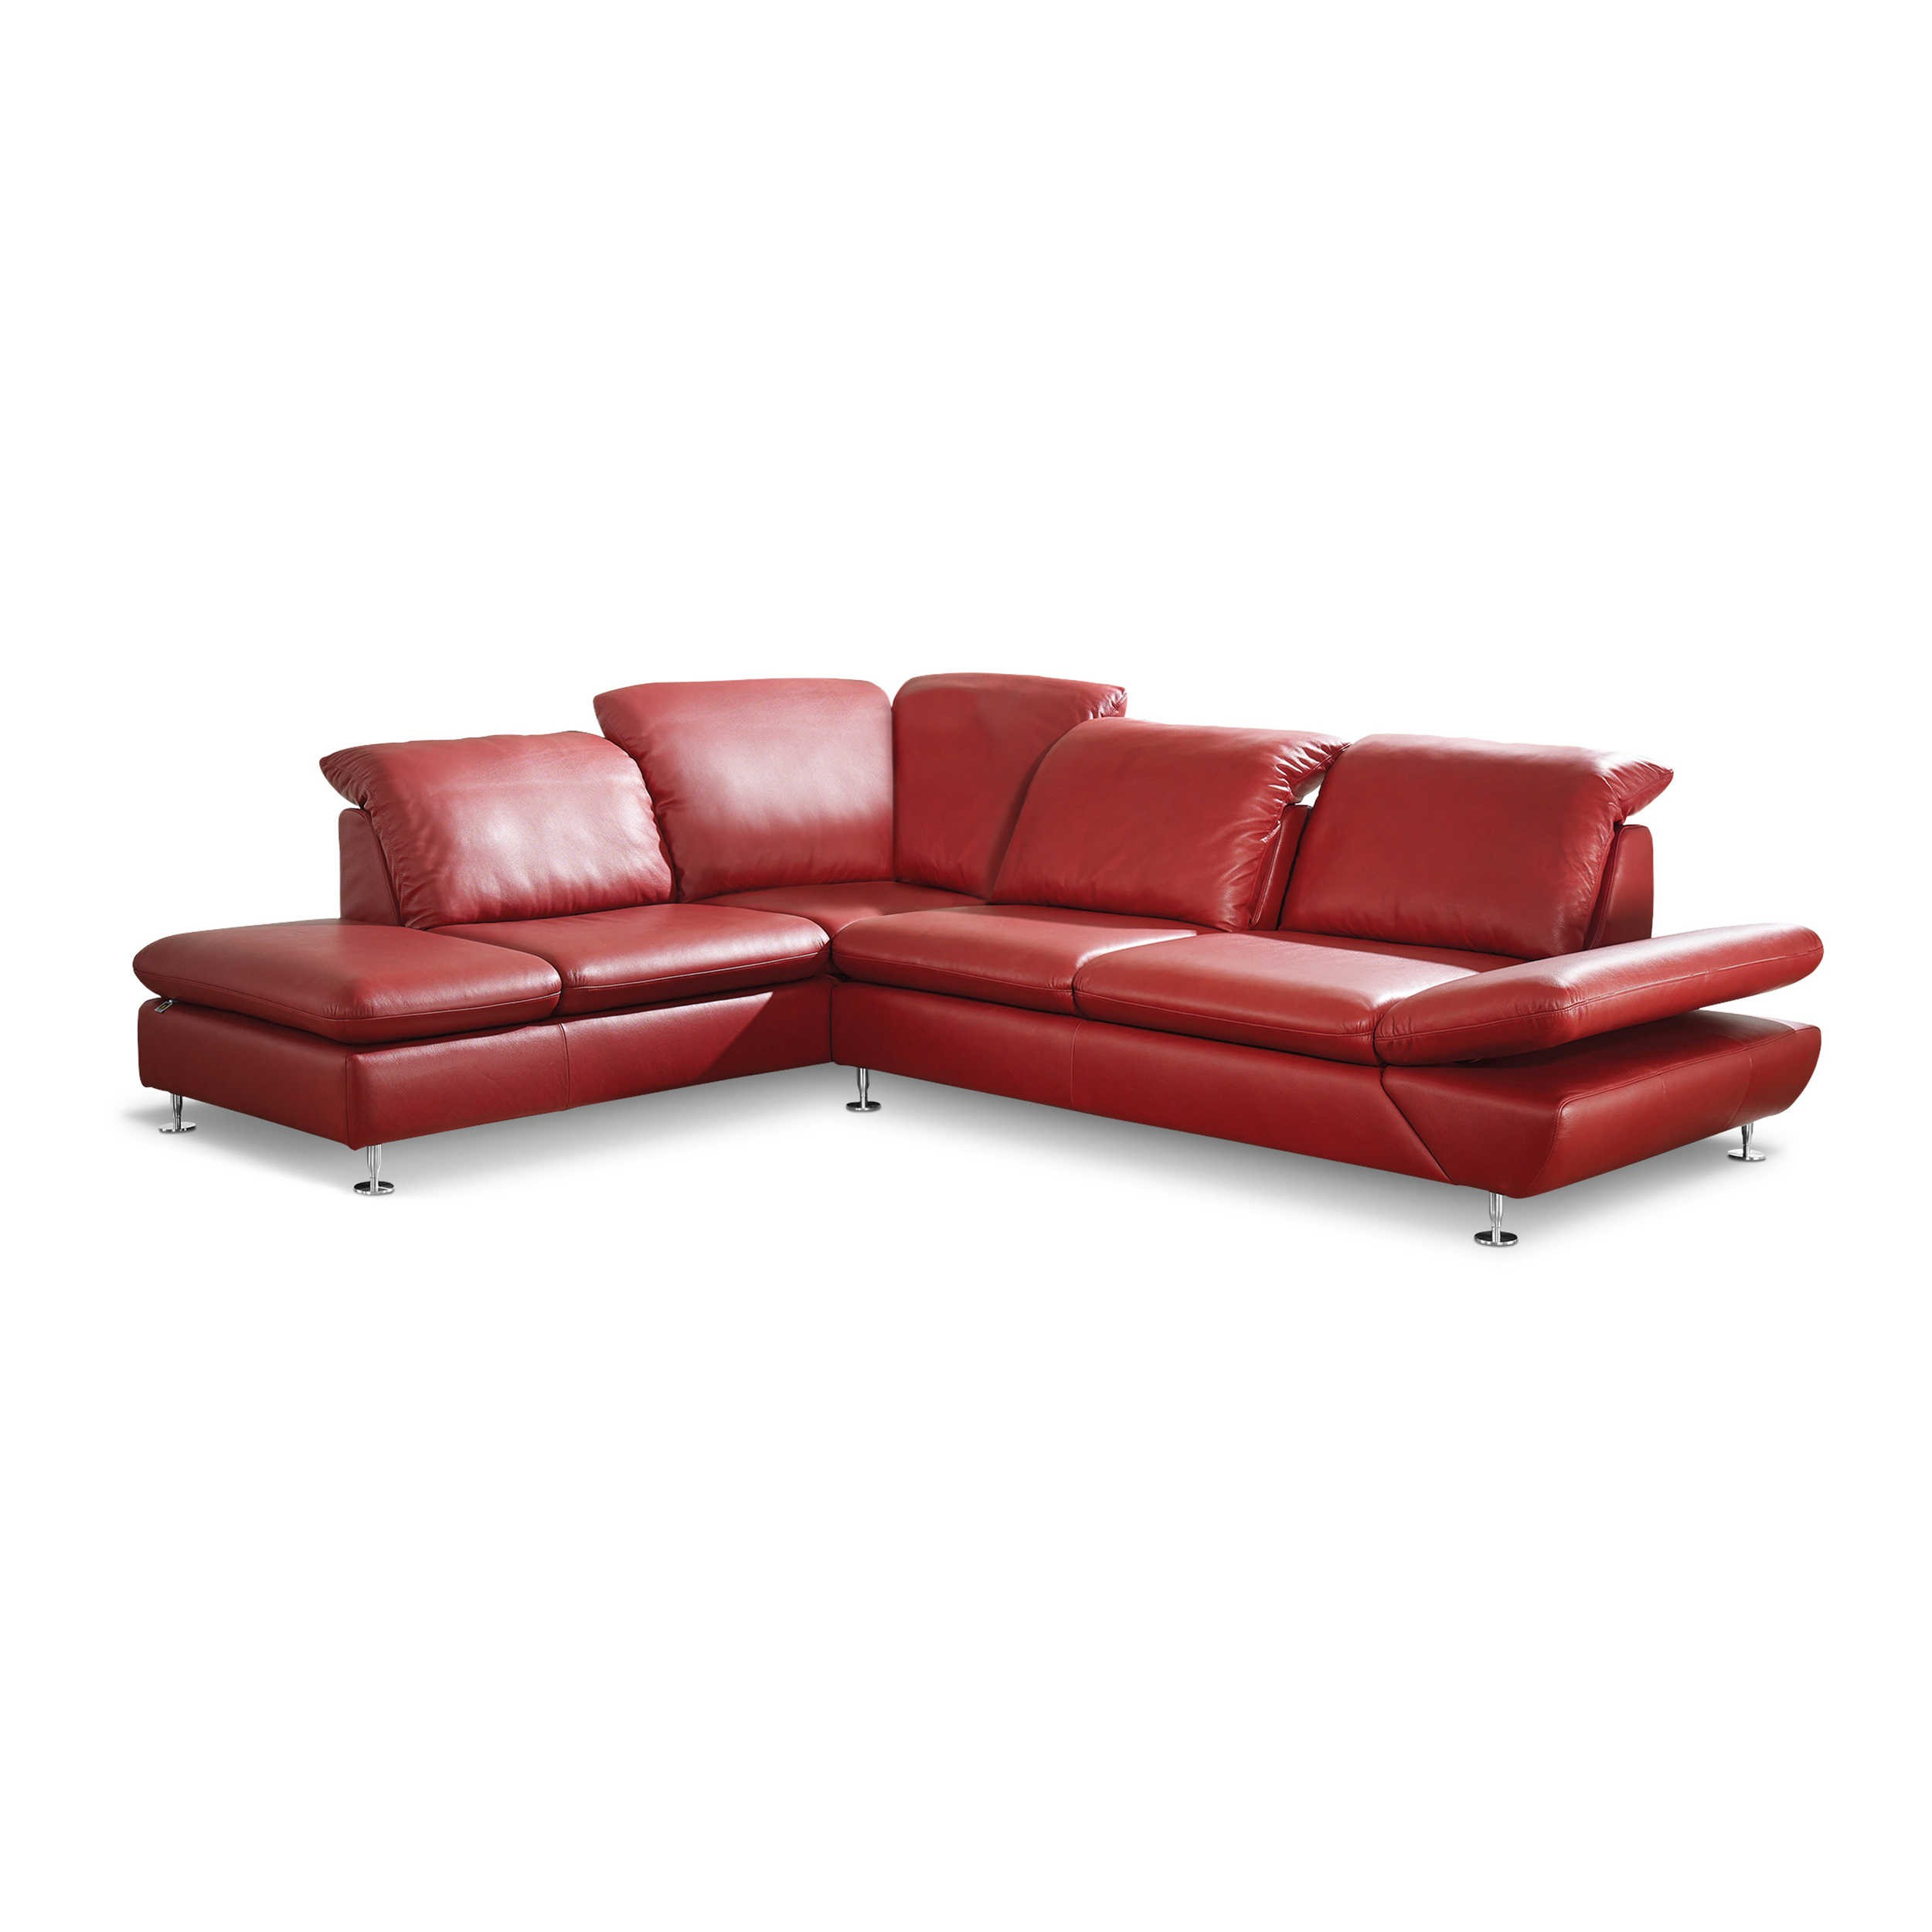 willi schillig ecksofa 15278 taoo rot leder online kaufen bei woonio. Black Bedroom Furniture Sets. Home Design Ideas